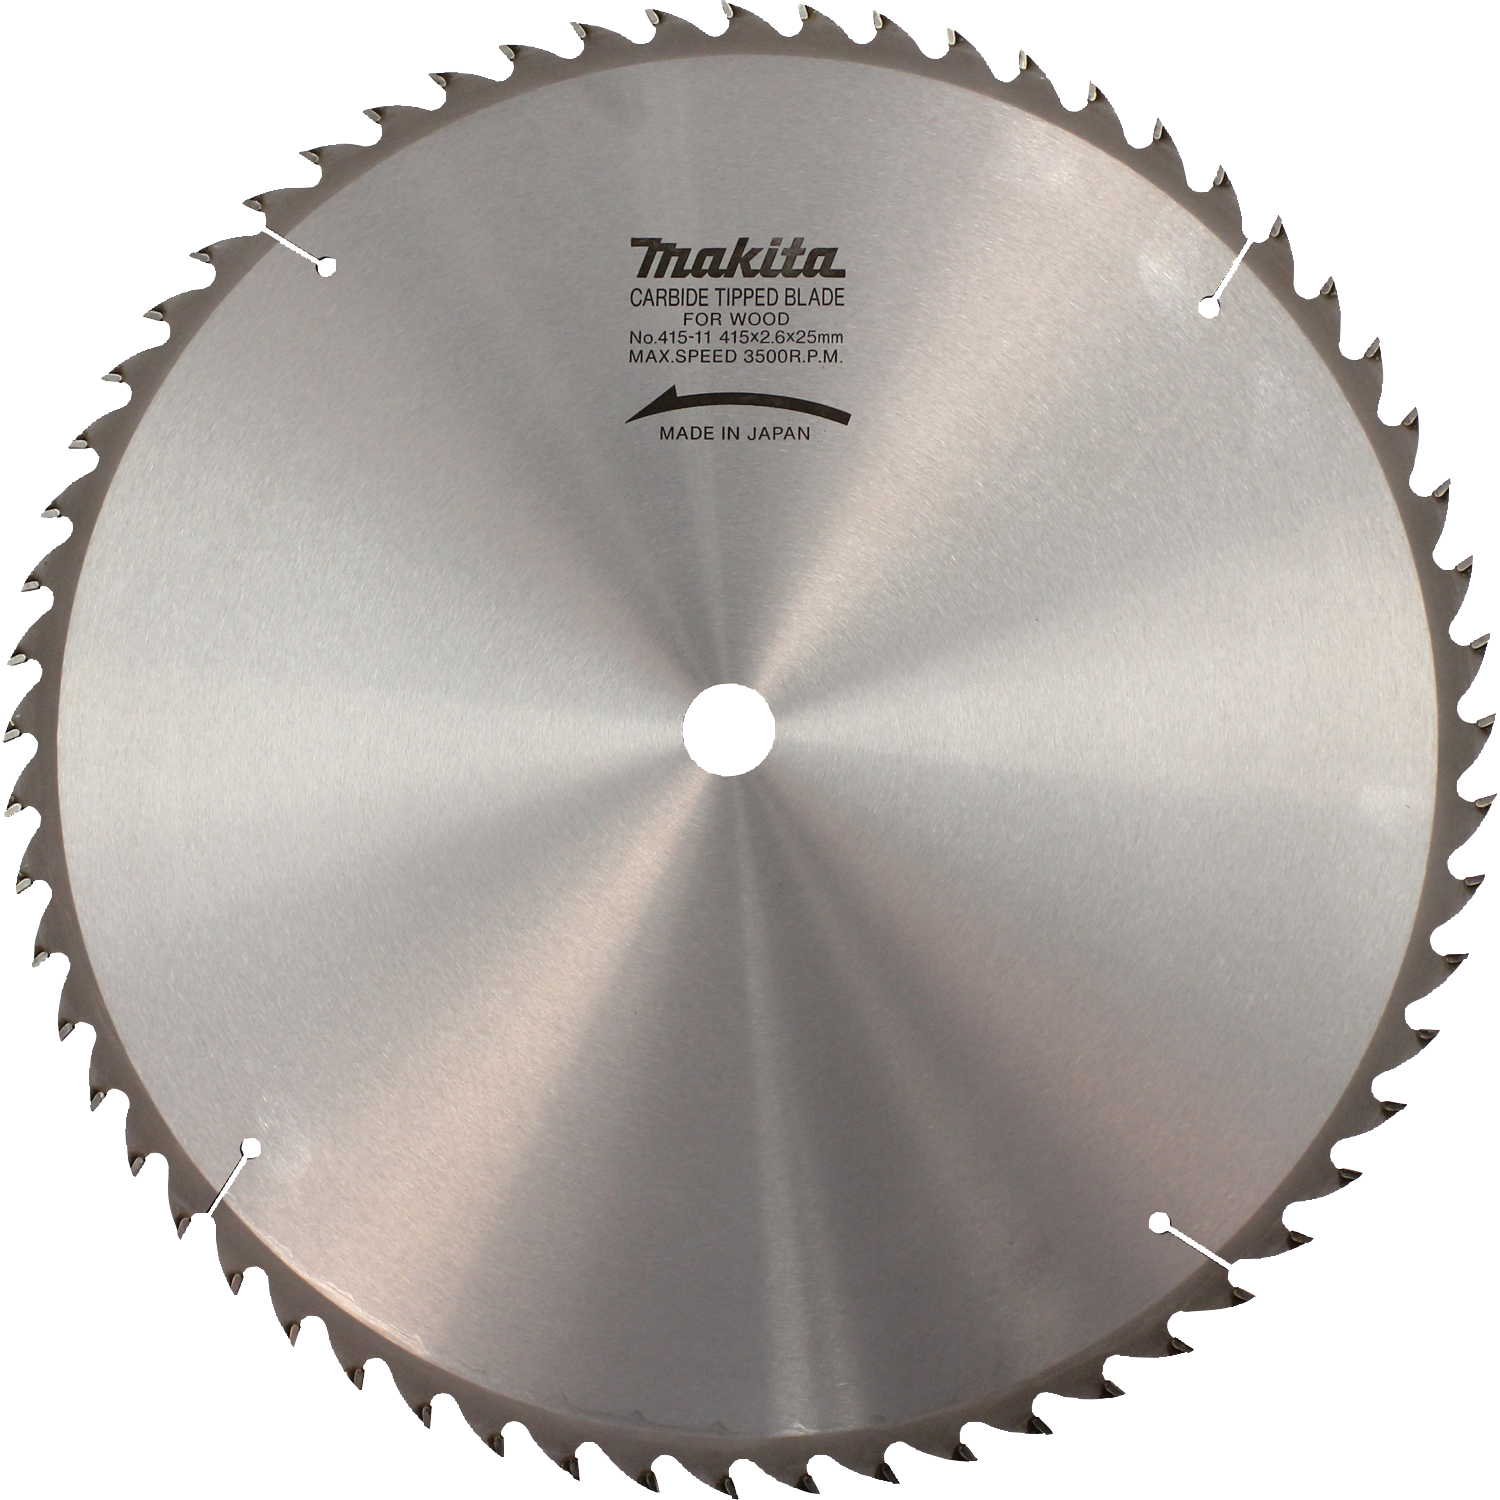 Makita usa product details 5007mg 792118 8 16 516 60t carbide tipped circular saw blade keyboard keysfo Image collections